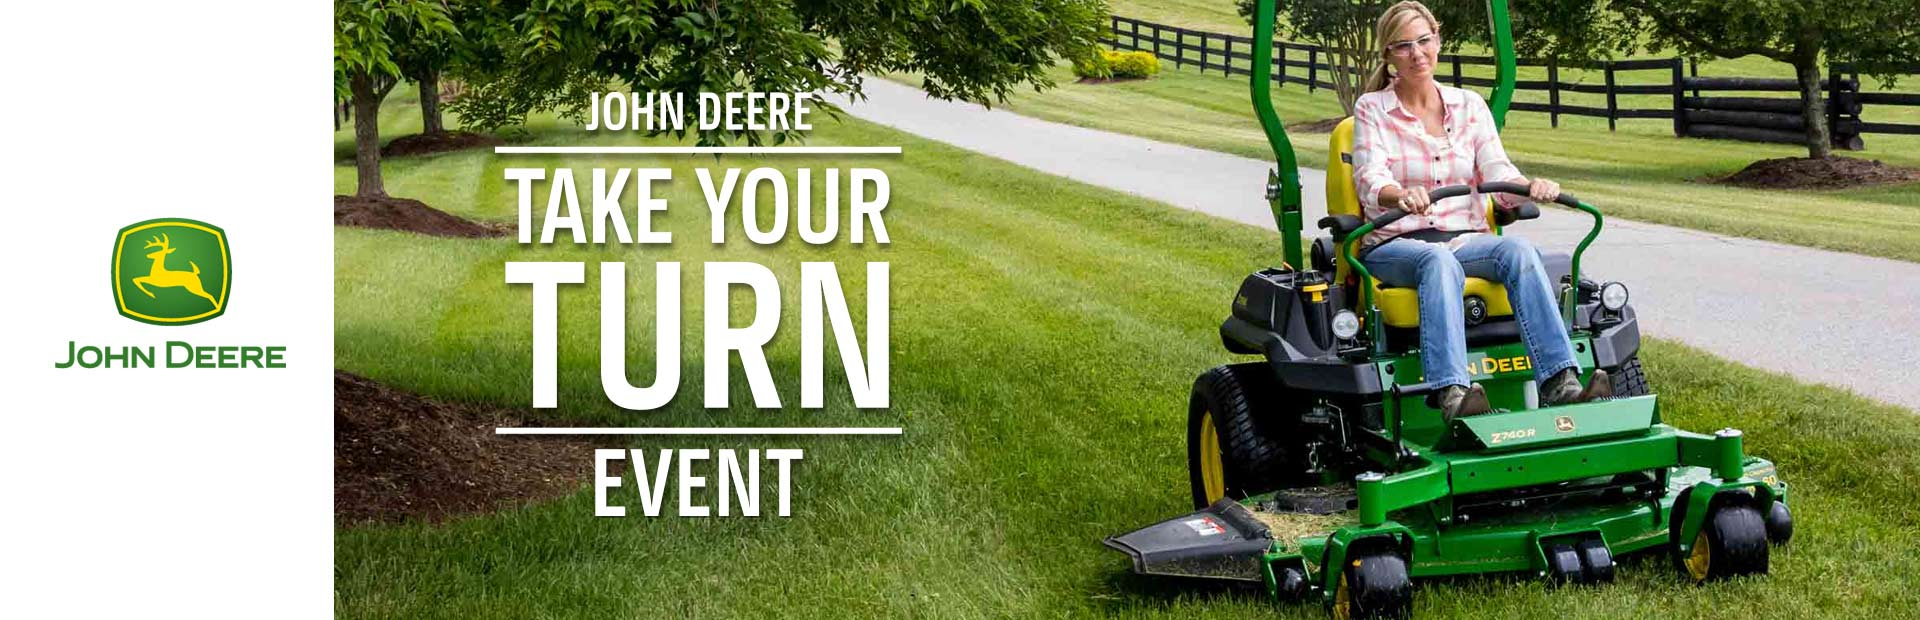 John Deere: Take Your Turn Test Drive Event